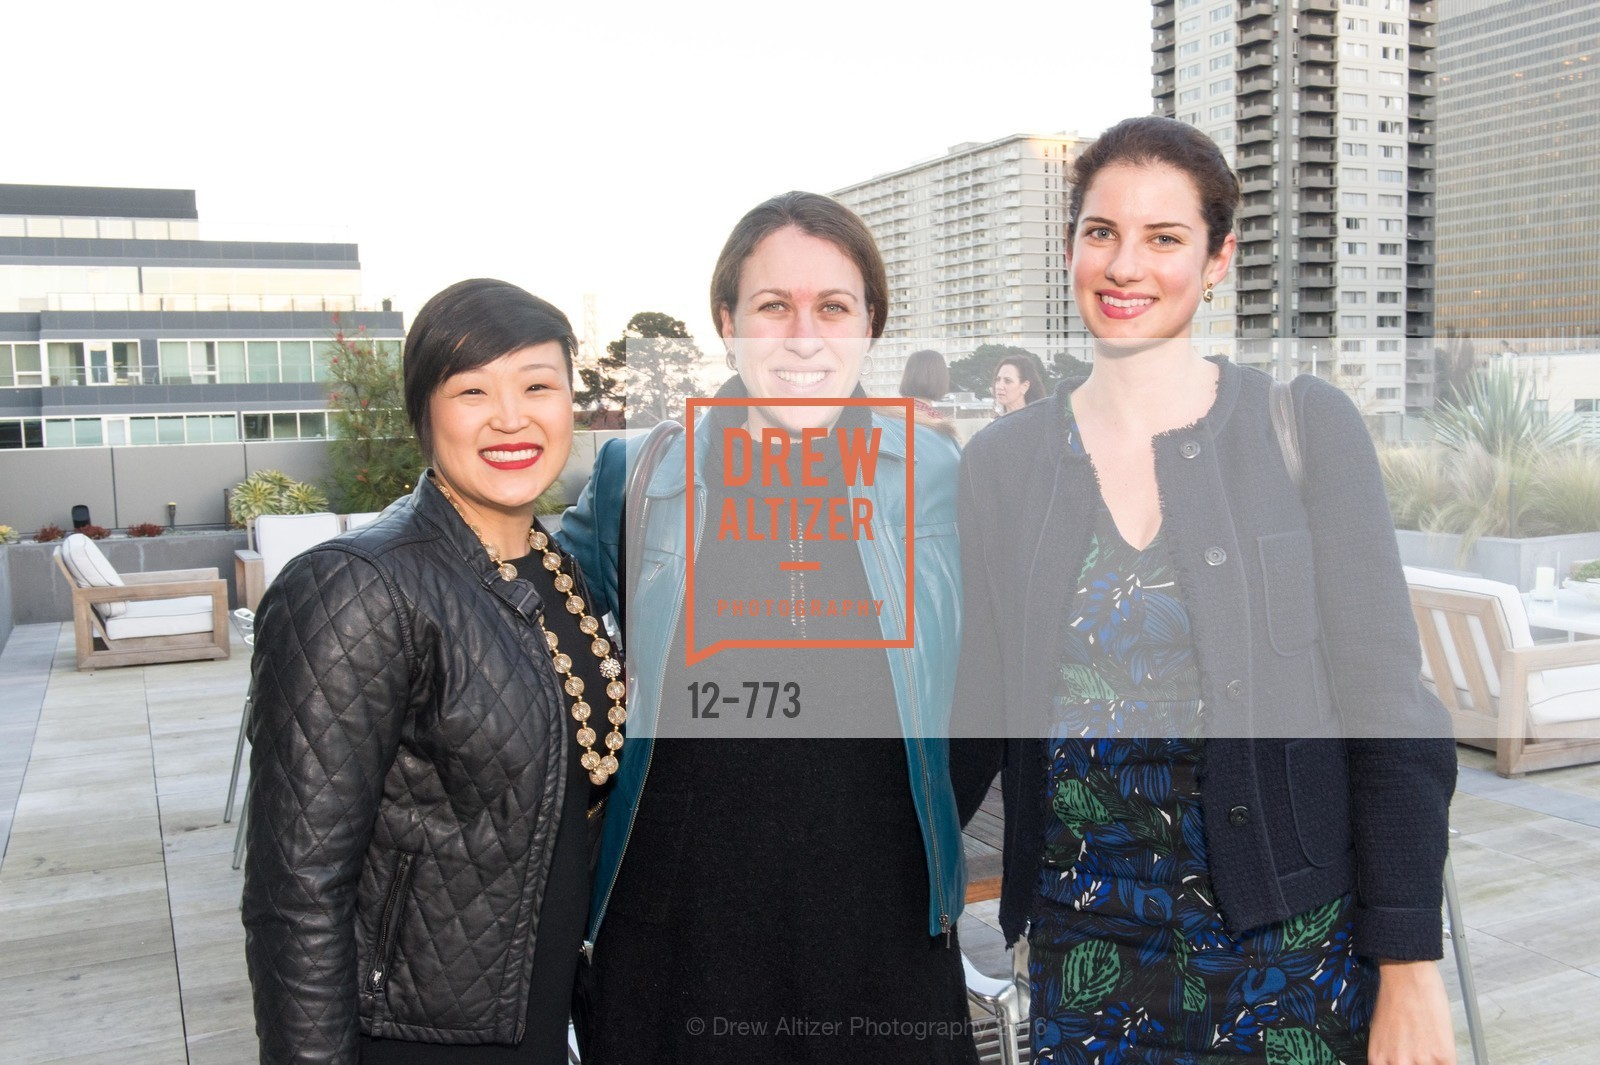 Kelly Kang, Lisa Faulkner, Camilla Moshayedi, Sotheby's International Realty's Celebrates the New Year, The Battery, Penthouse. 717 Battery St, January 27th, 2016,Drew Altizer, Drew Altizer Photography, full-service agency, private events, San Francisco photographer, photographer california